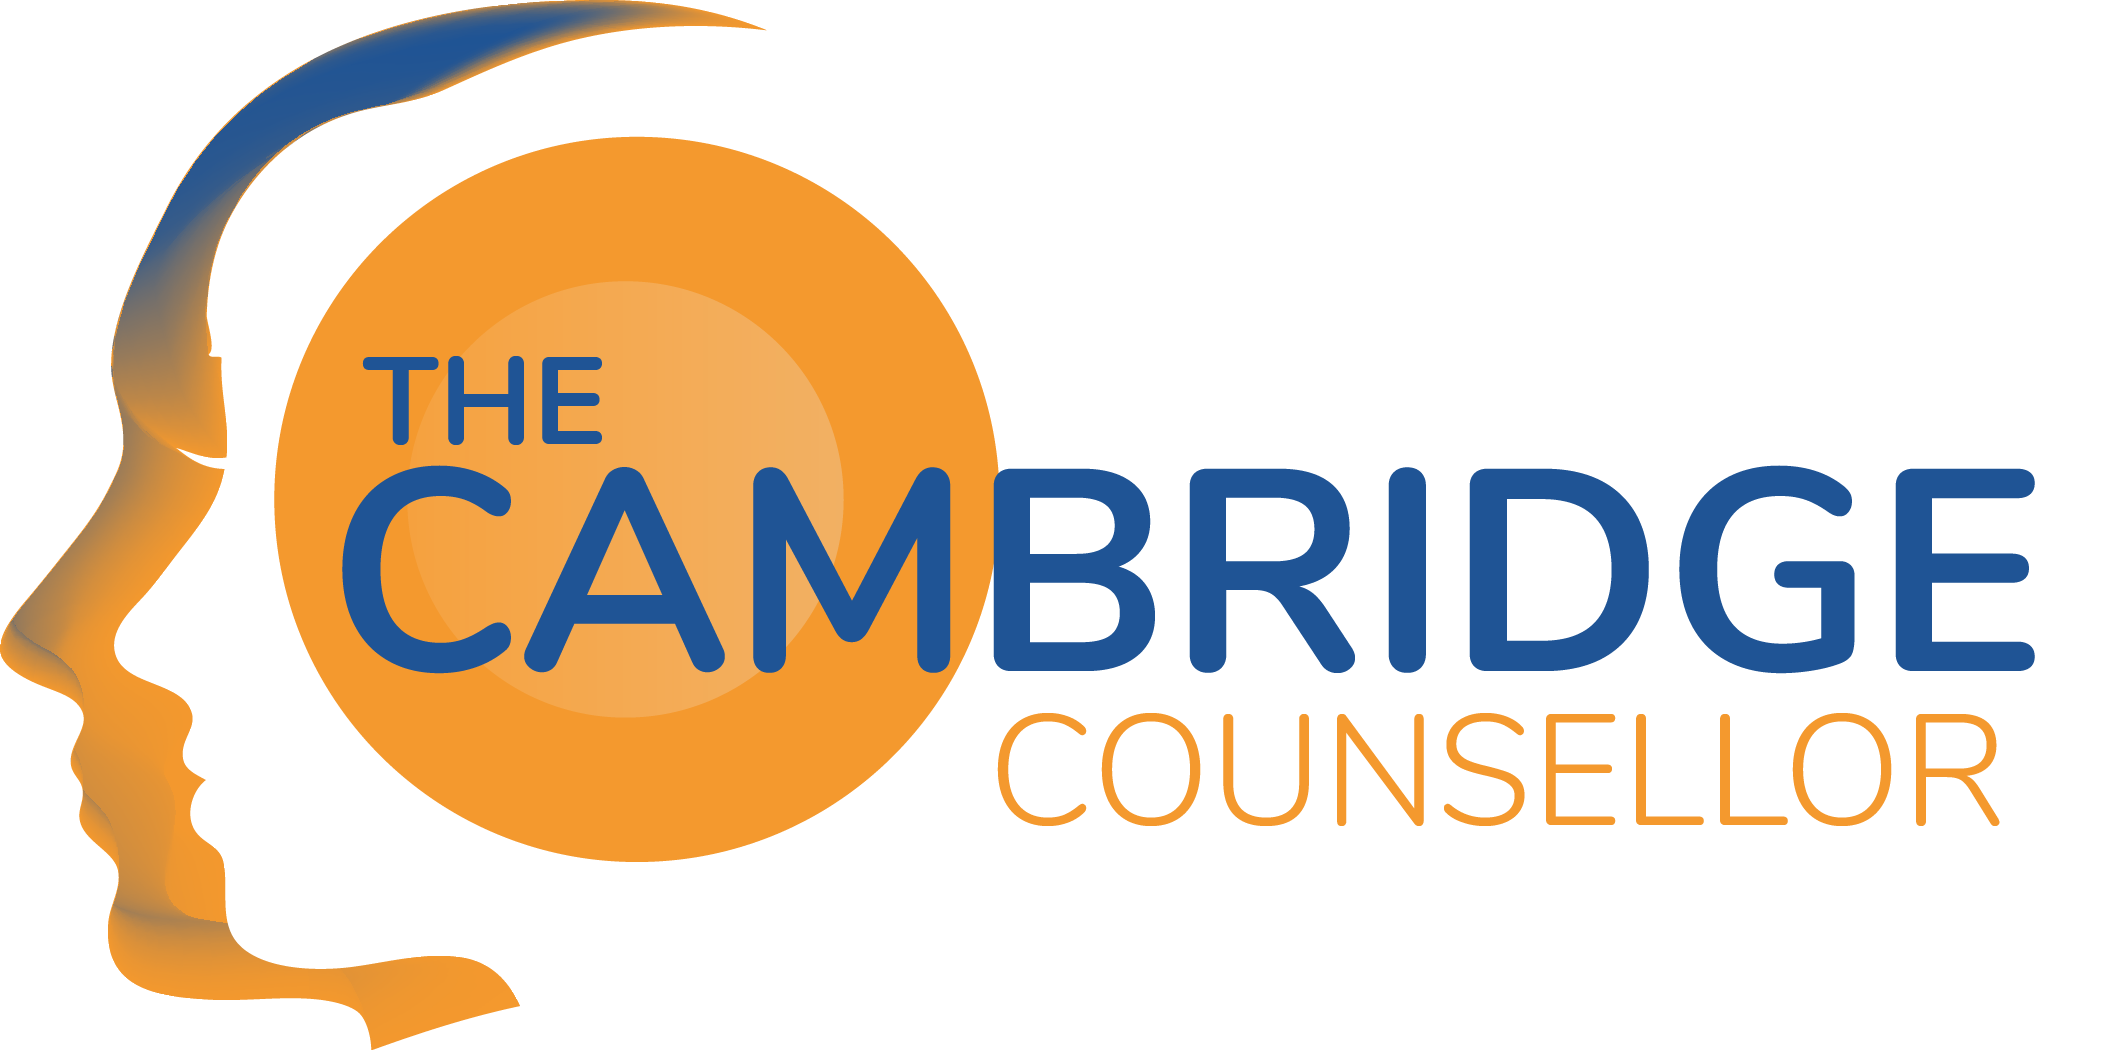 The Cambridge Counsellor